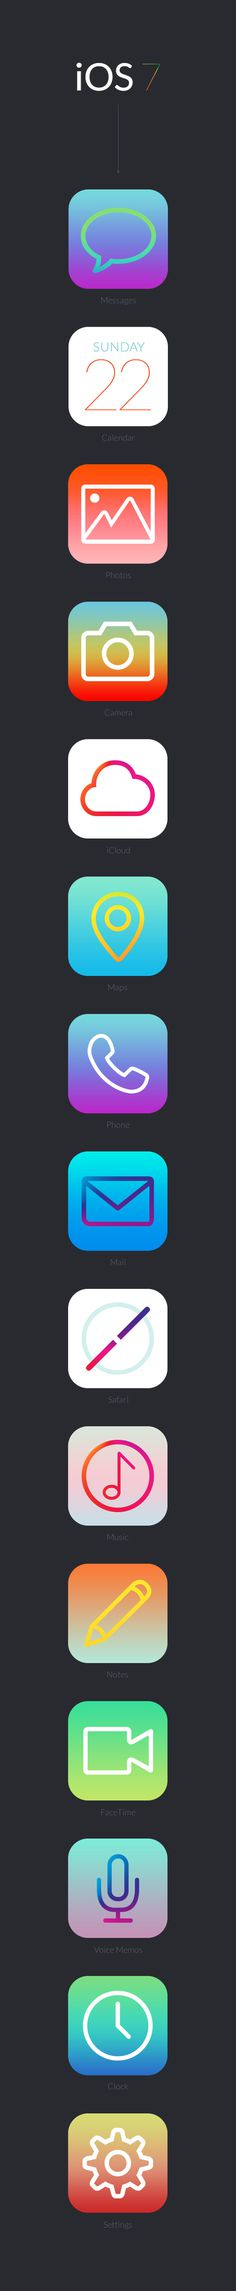 iOS 7 #design #art #minimal #simple #iphone #vector #icon #light #gradient #ios #mobile #apple